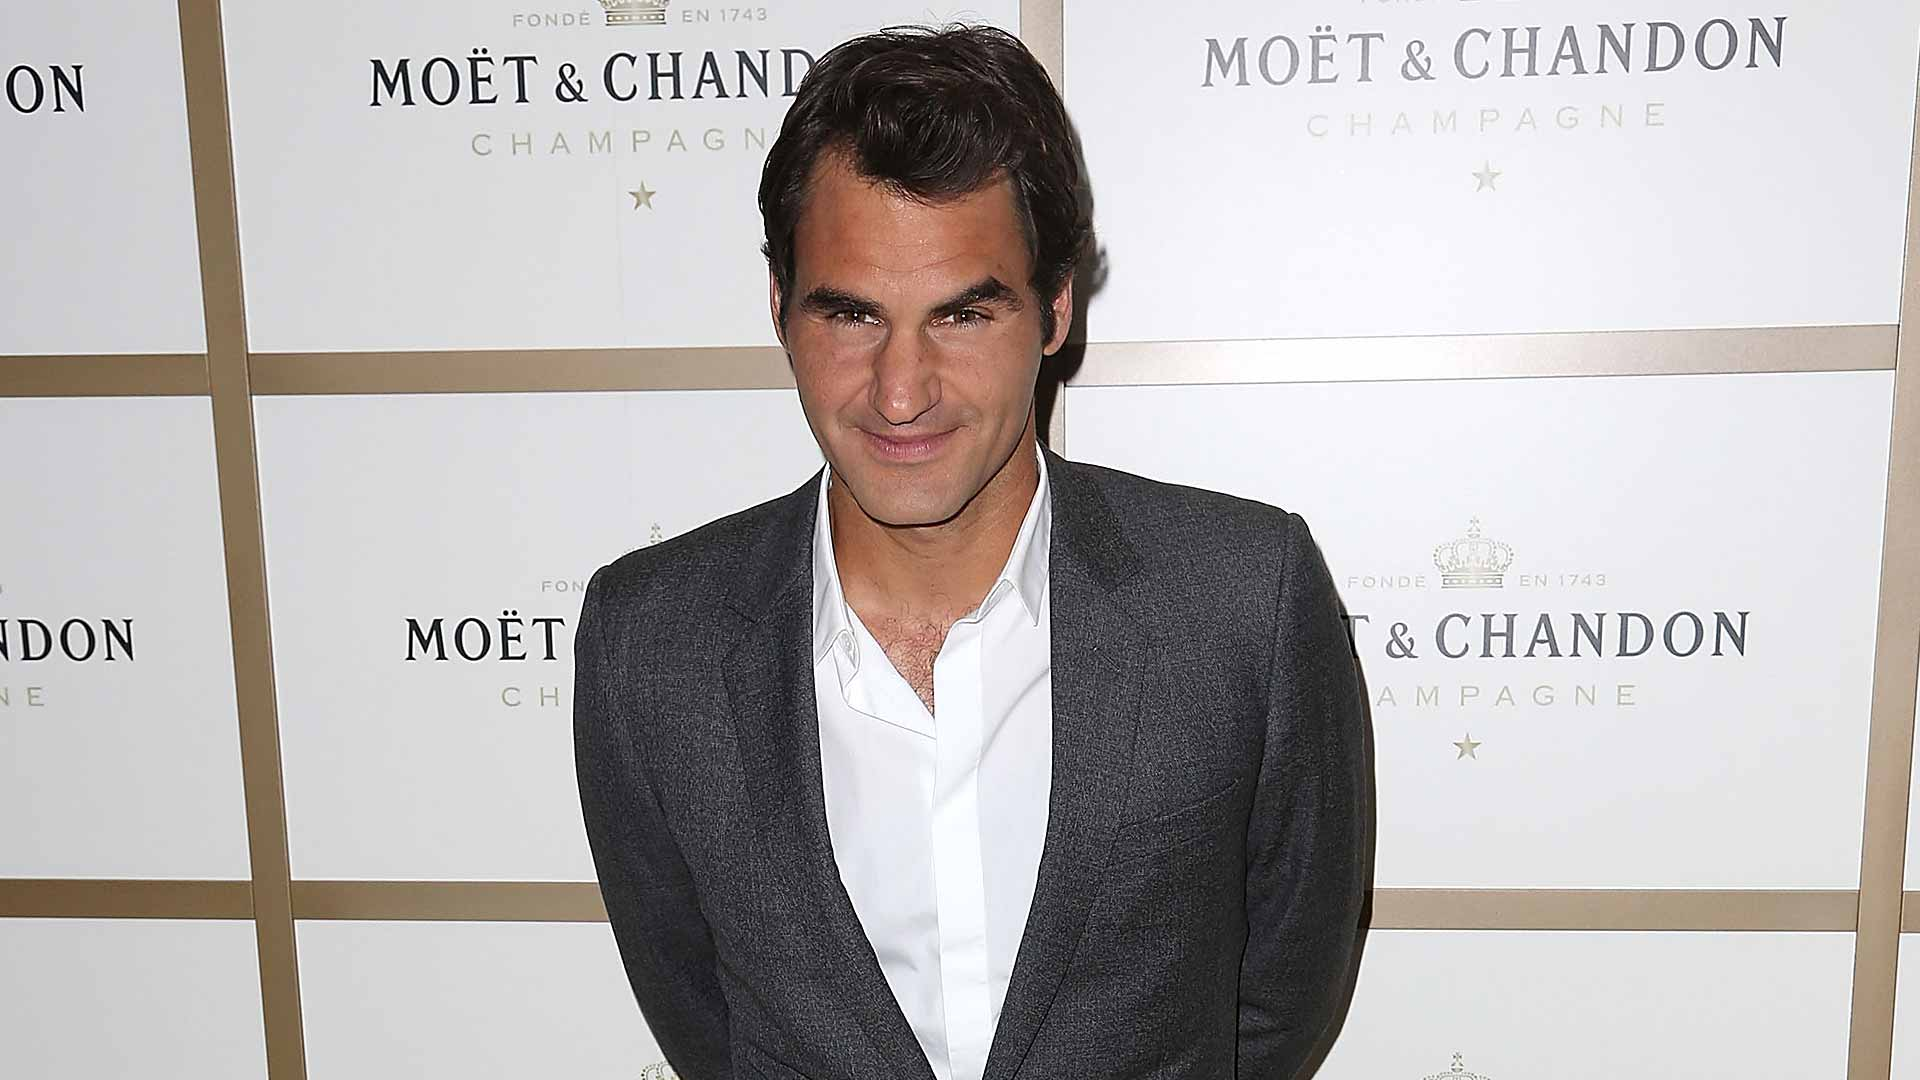 Roger Federer leads all athletes in off-court earnings.